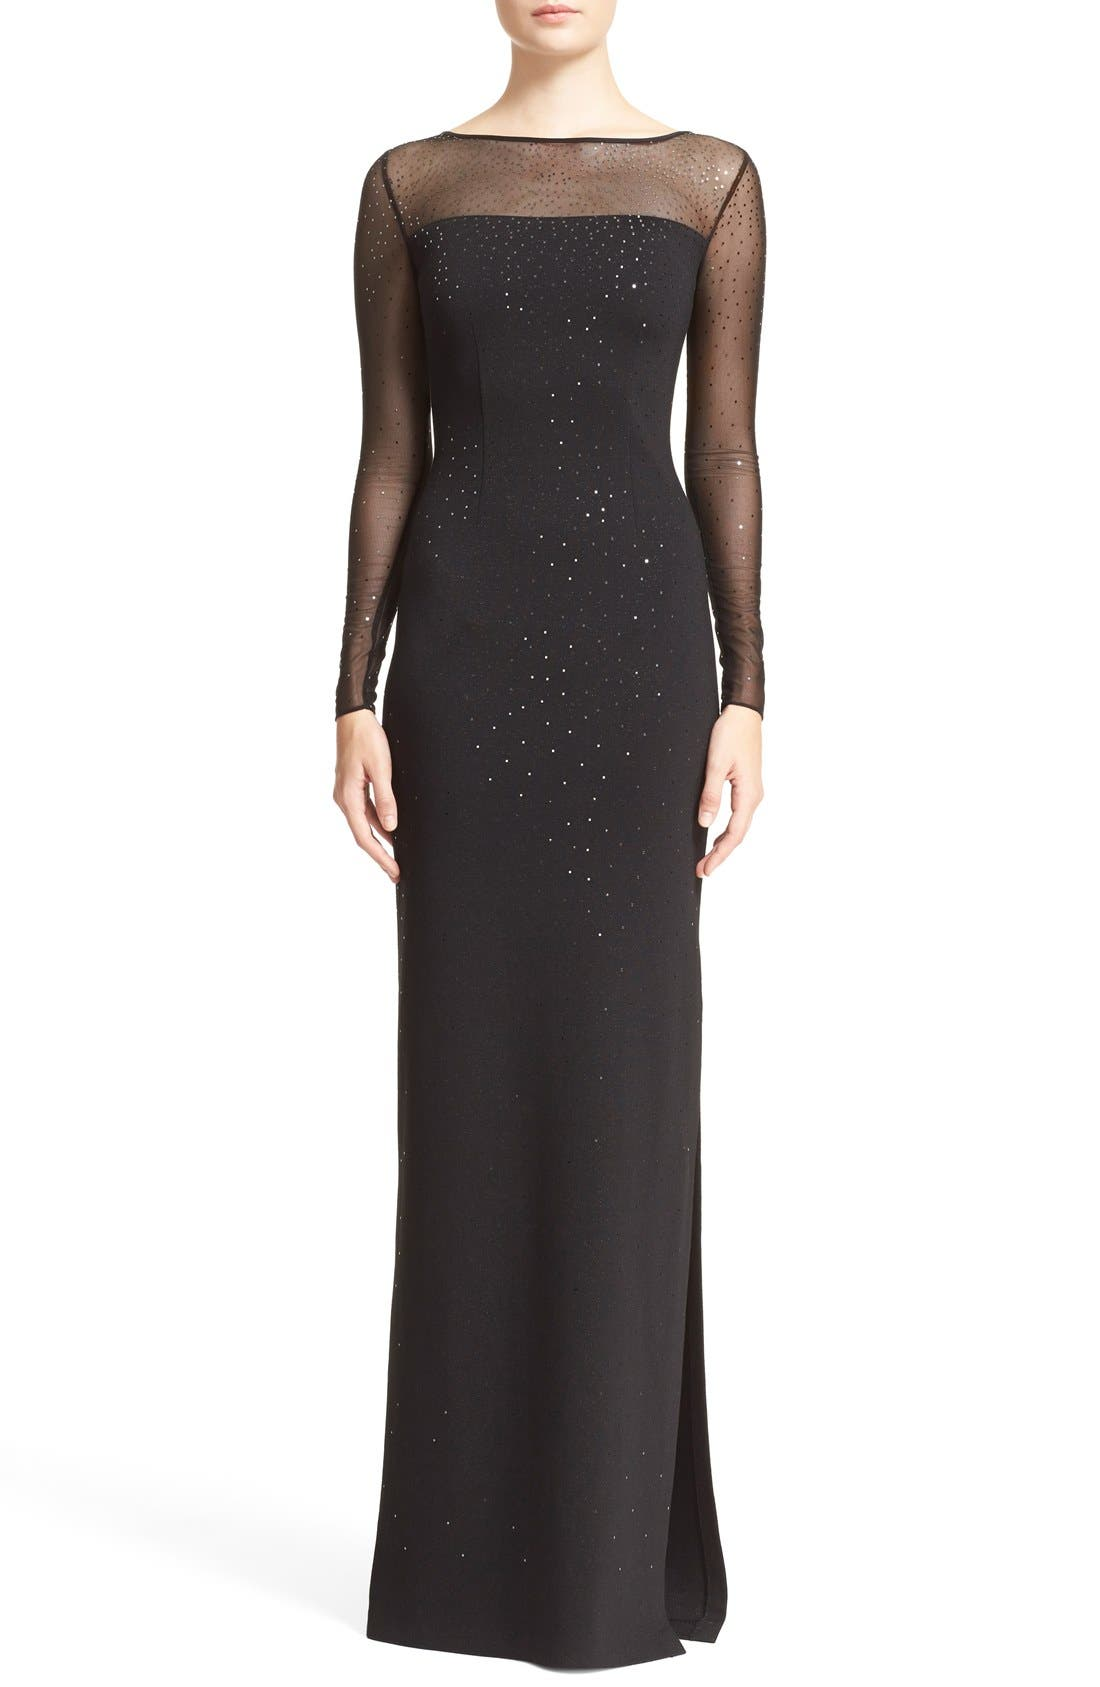 ST. JOHN COLLECTION, Embellished Shimmer Milano Knit Gown, Main thumbnail 1, color, 001